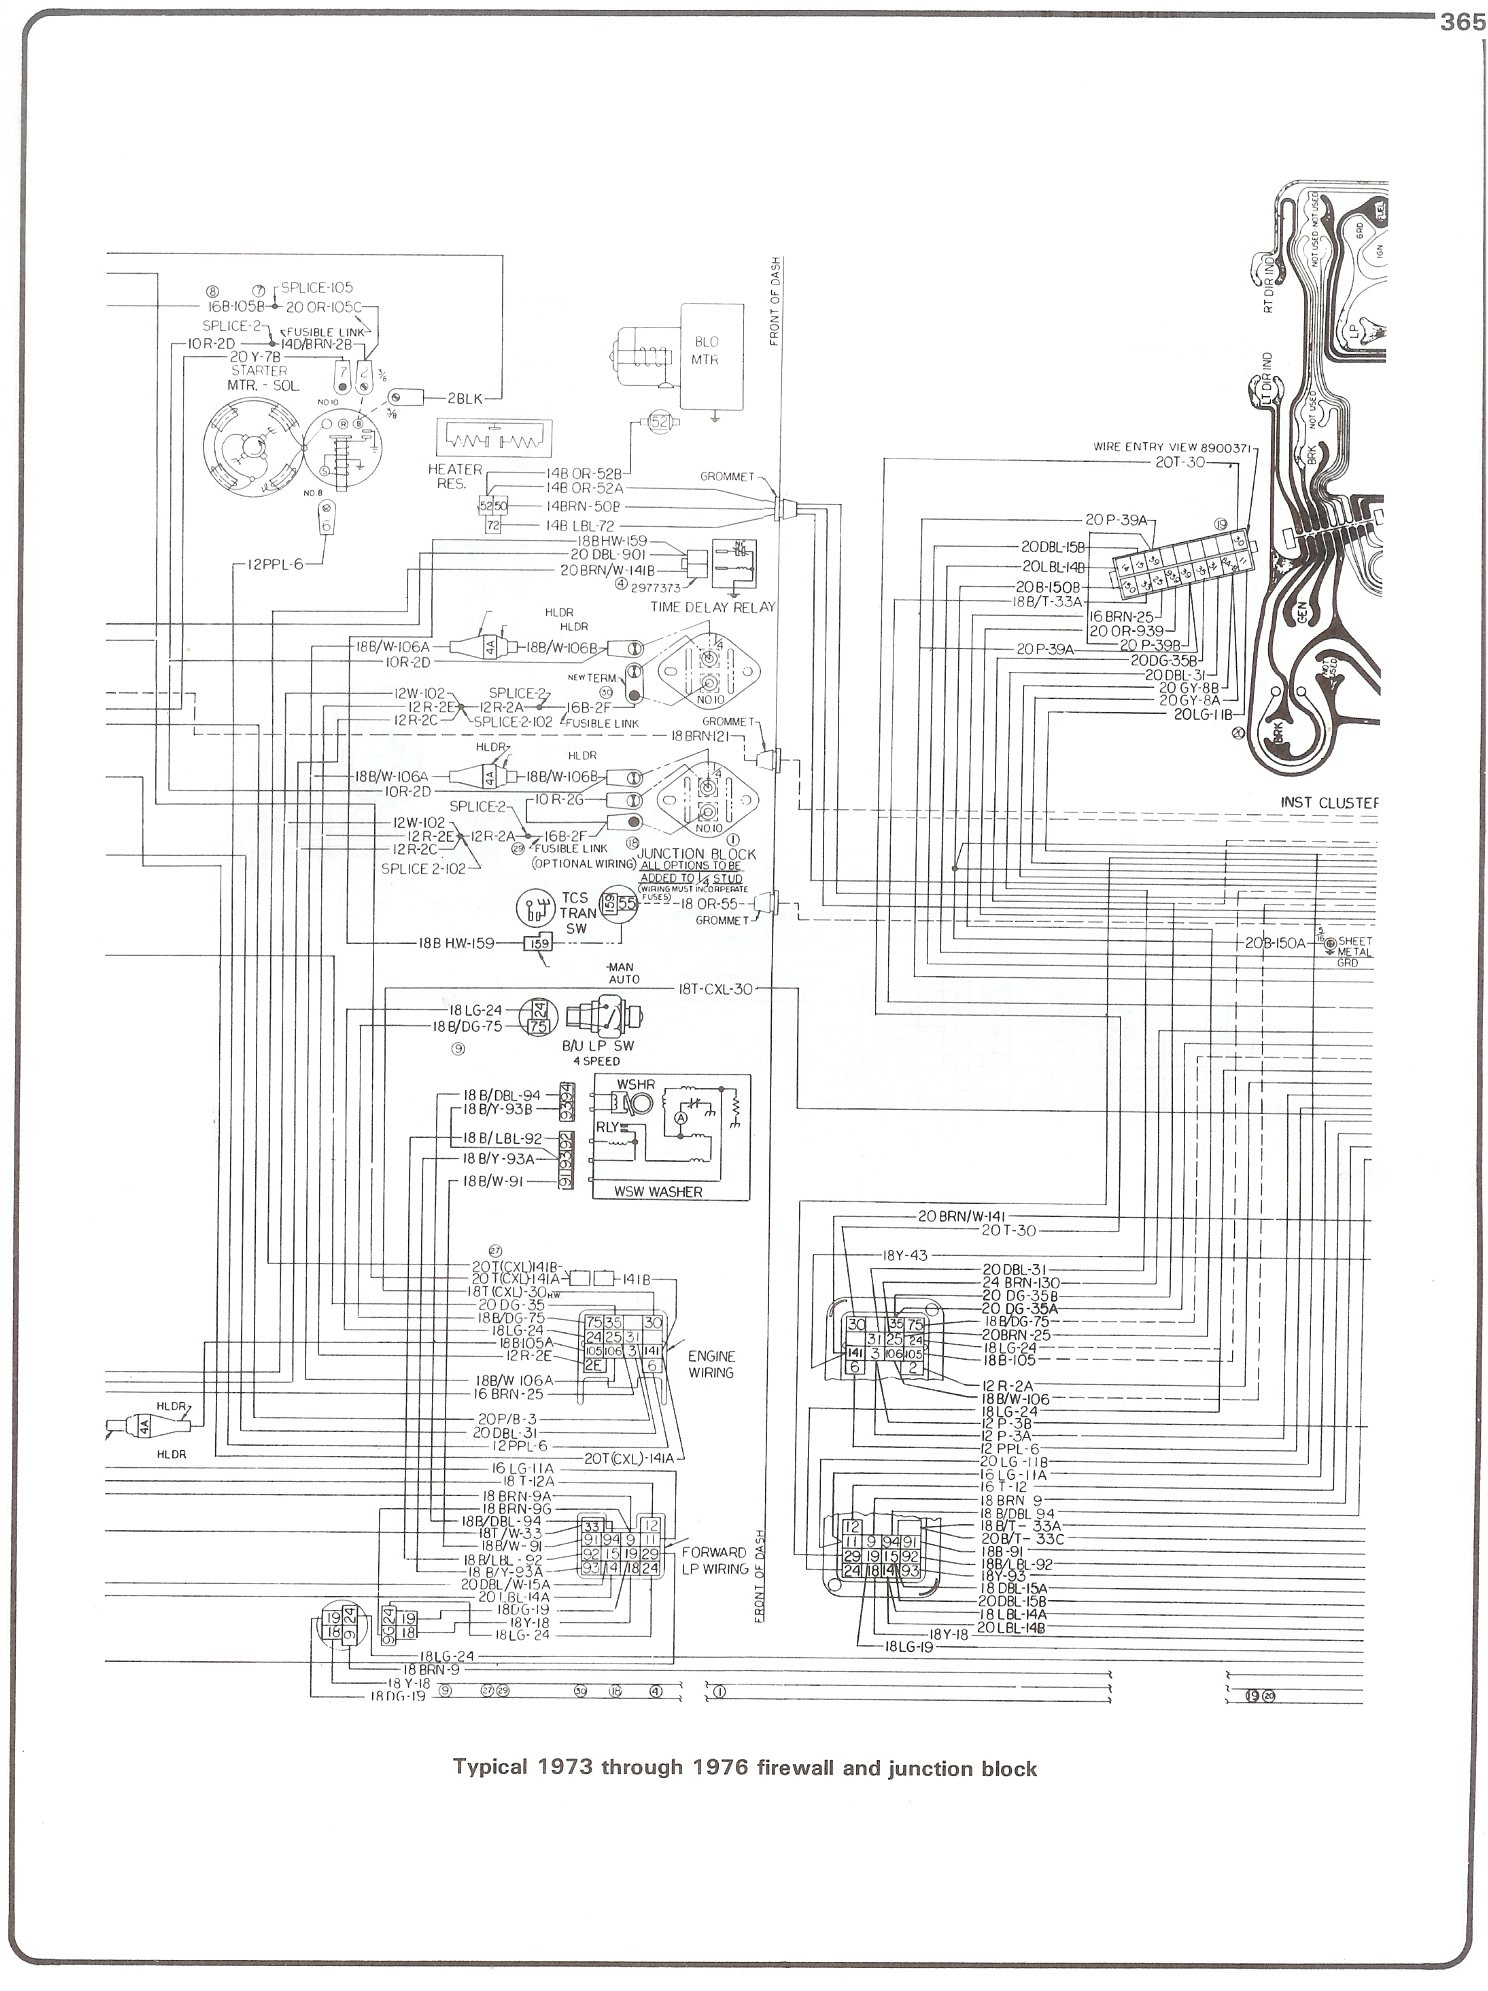 1965 c10 wiring harness 1966 chevy truck wiring diagram wiring 1965 Chevy Truck Wiring Diagram 1984 c10 wiring harness on 1984 images free download wiring diagrams 1965 c10 wiring harness 1984 1965 chevy truck wiring diagram